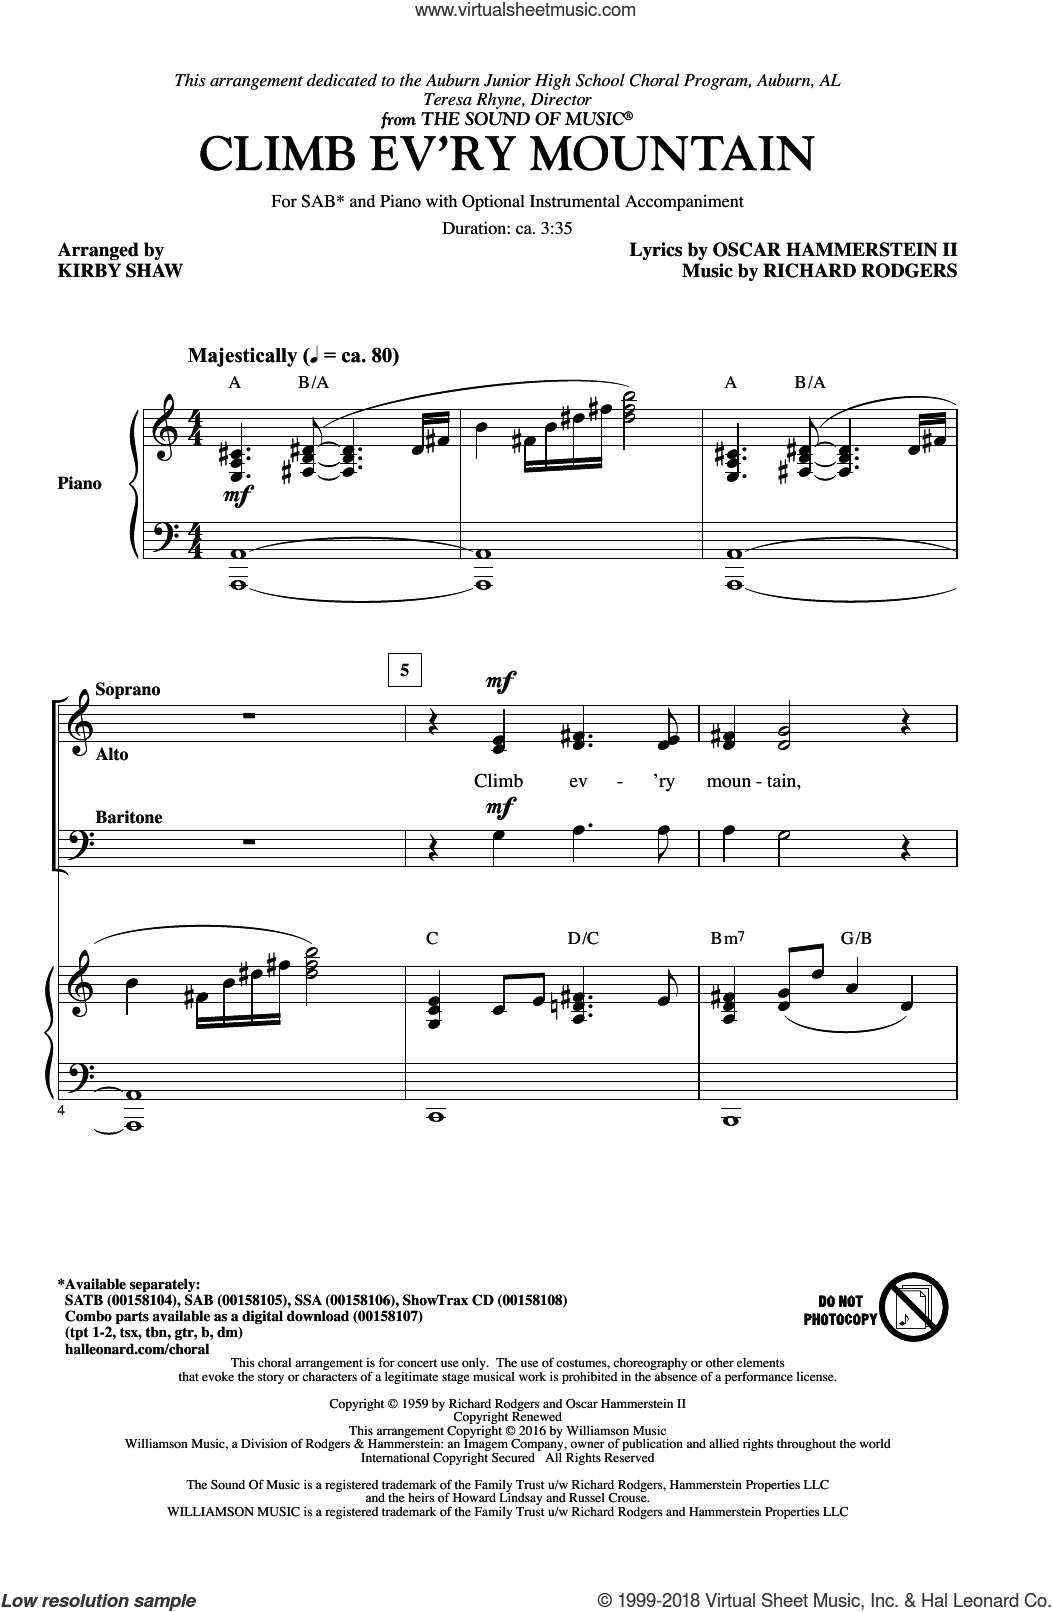 Climb Ev'ry Mountain sheet music for choir (SAB: soprano, alto, bass) by Richard Rodgers, Kirby Shaw, Margery McKay, Patricia Neway, Tony Bennett and Oscar II Hammerstein, intermediate skill level